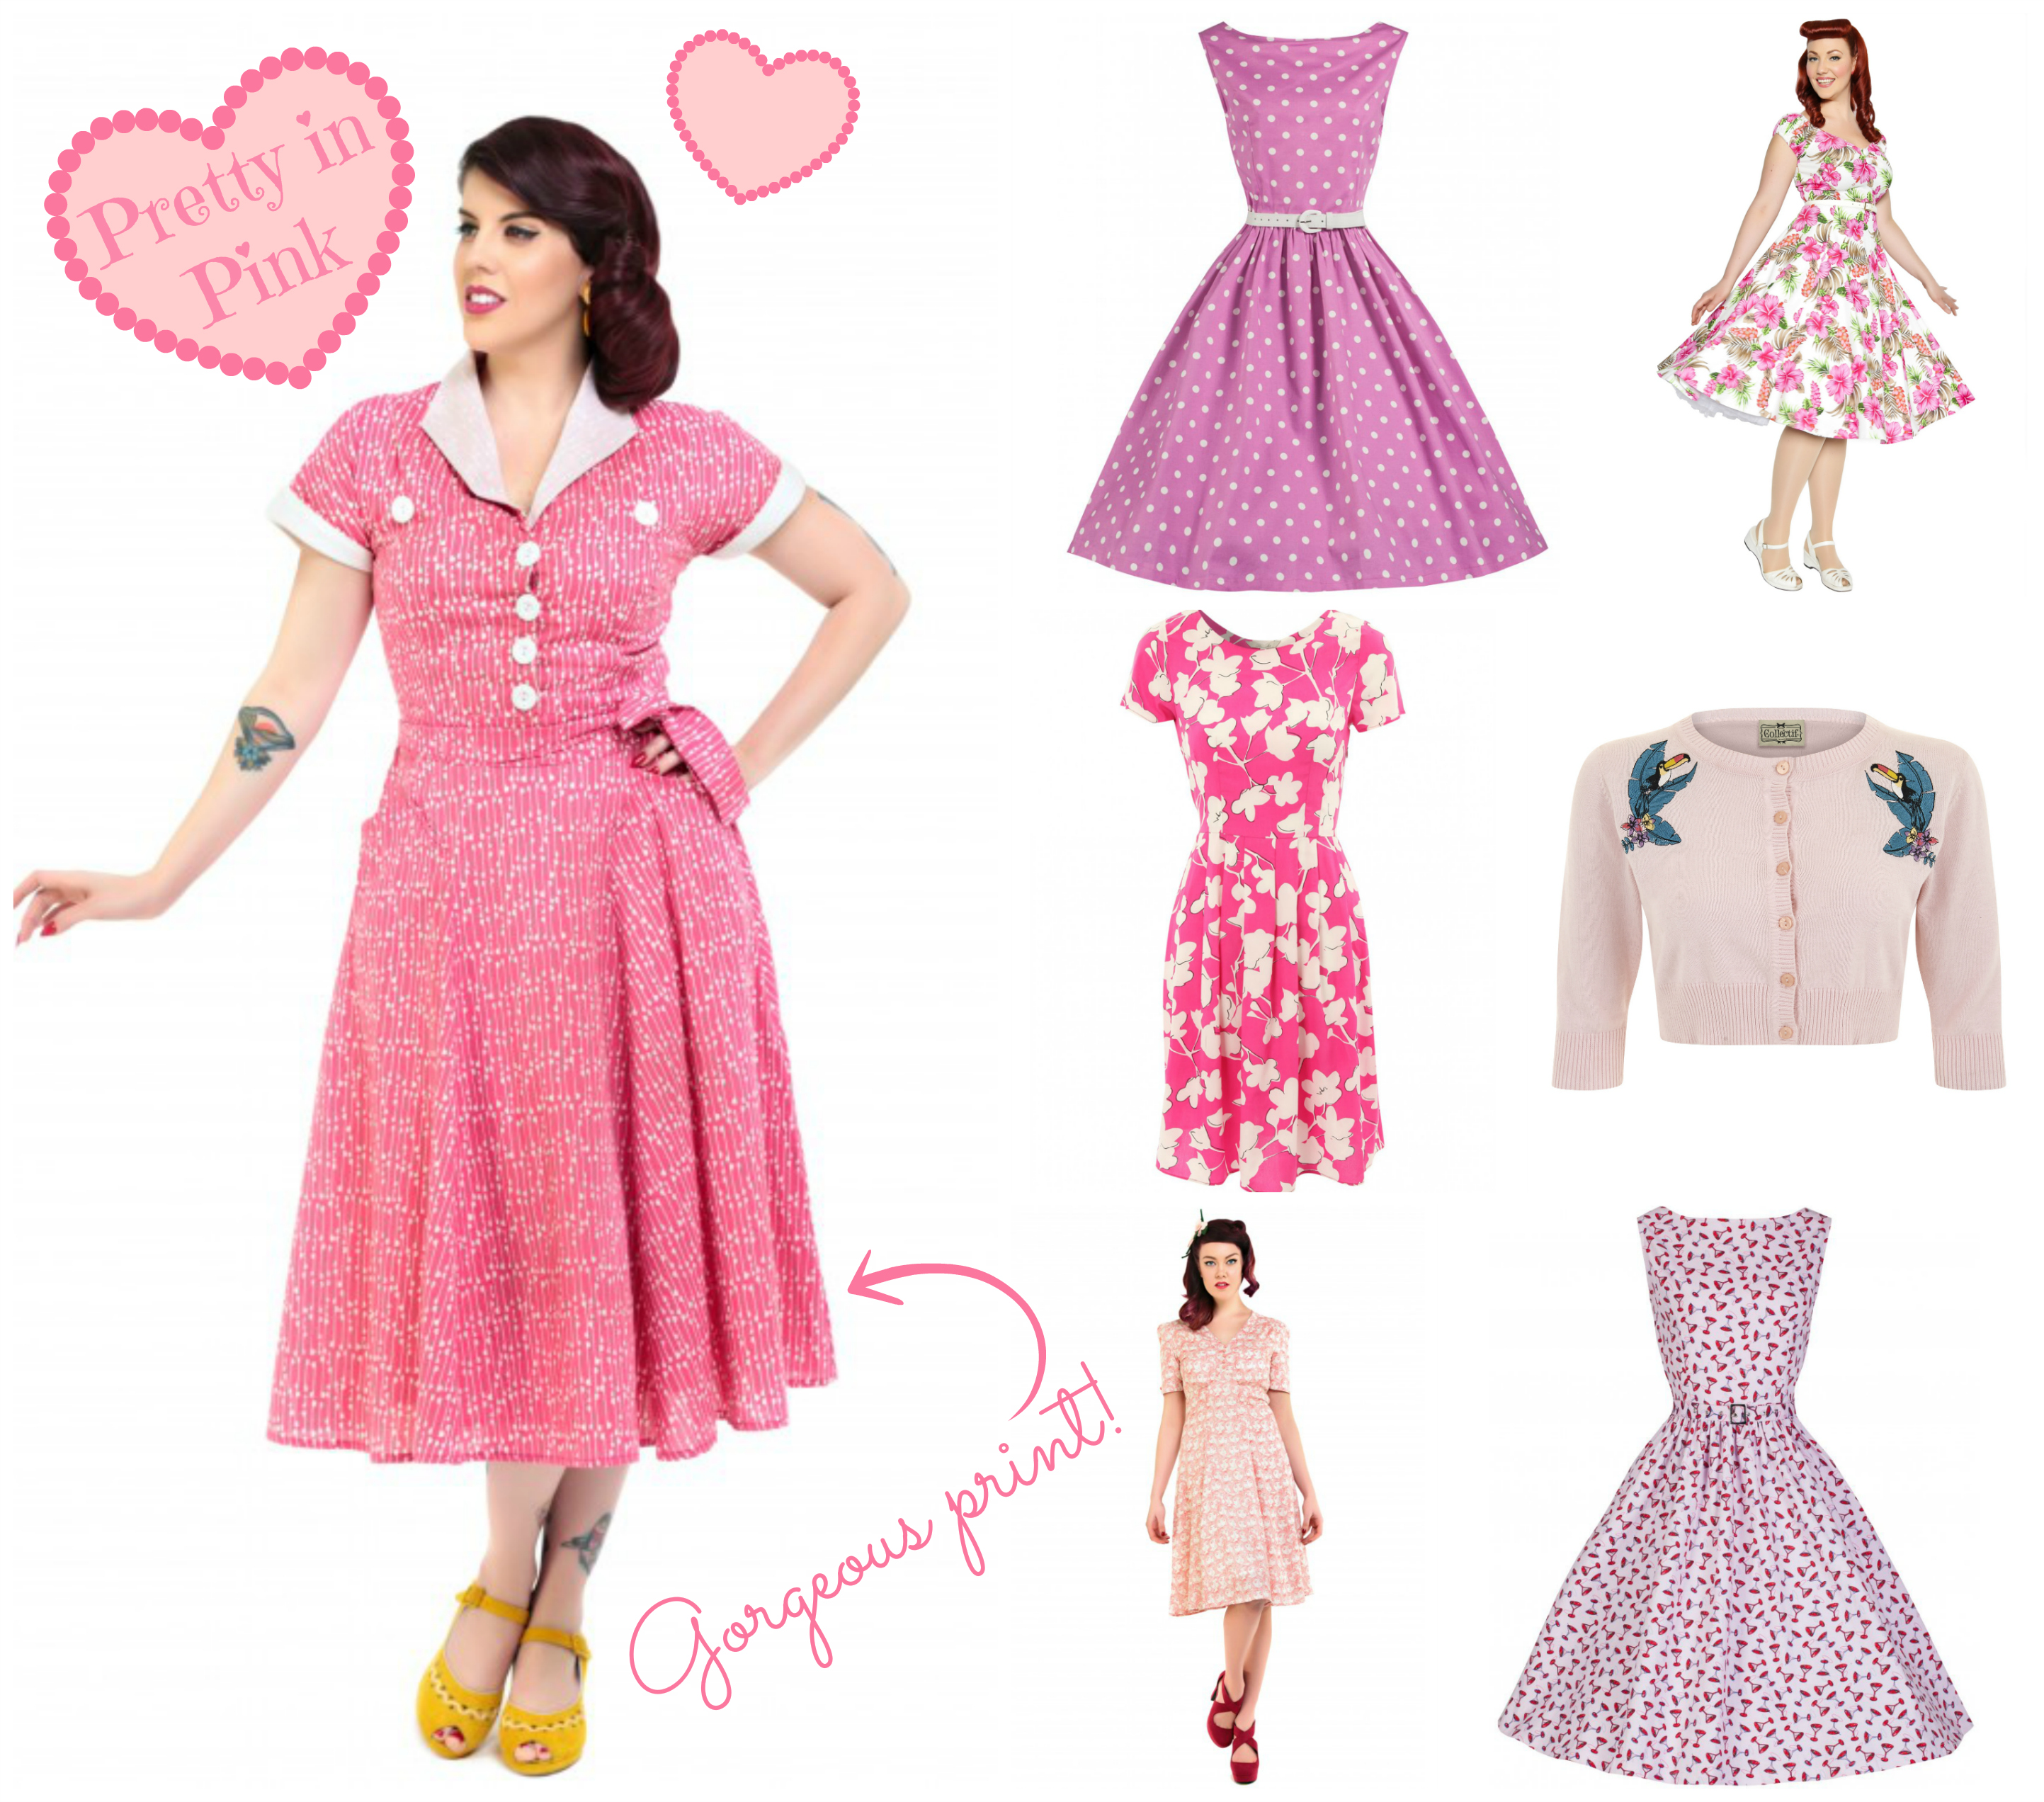 Pretty In Pink Summer Dresses - Vintage Frills